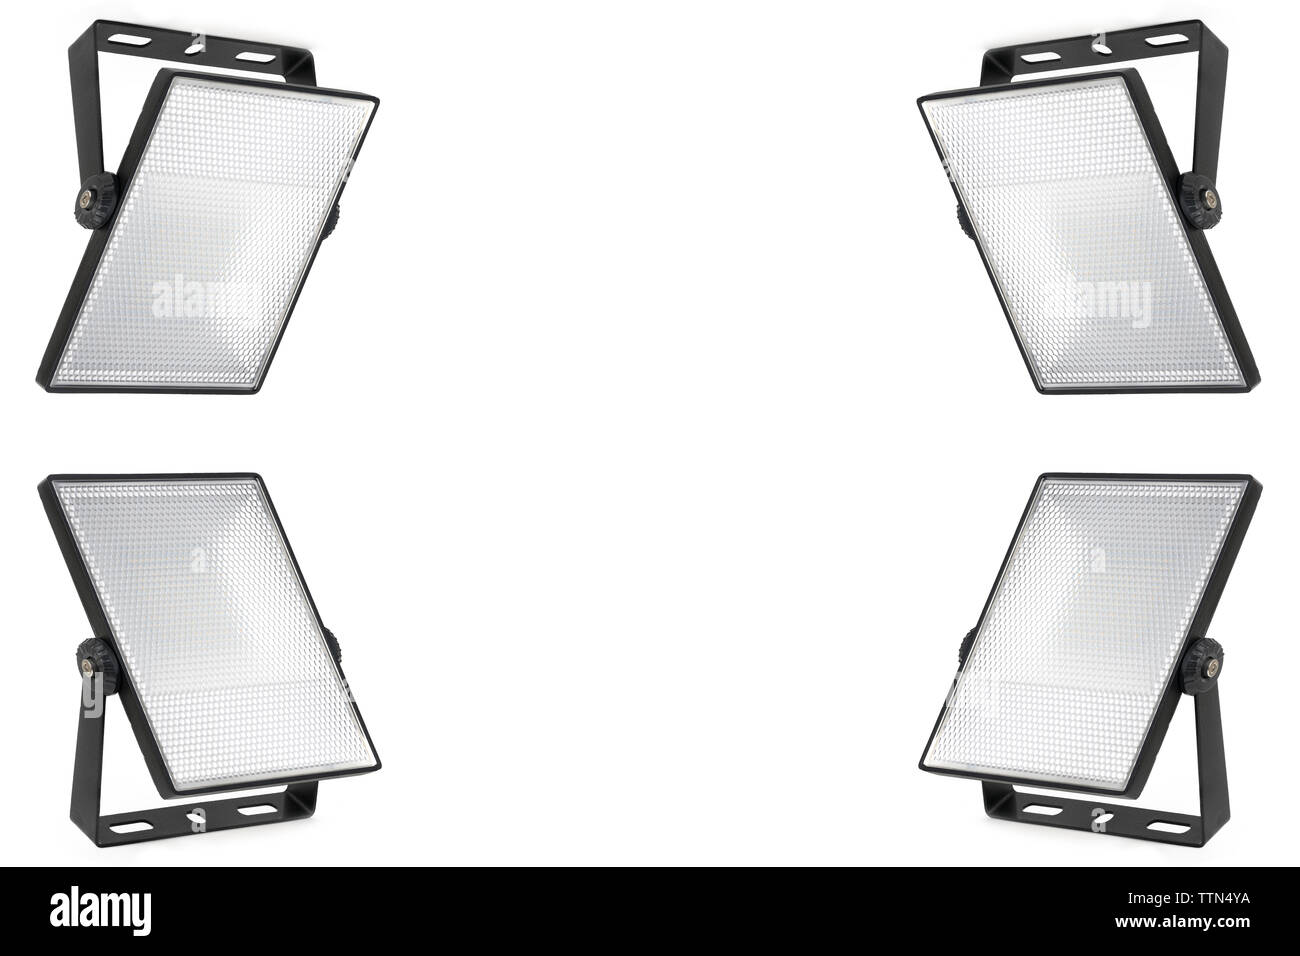 Set of four isolated led spotlights on white background. Translucent diffuser with small cells. A high resolution. - Stock Image